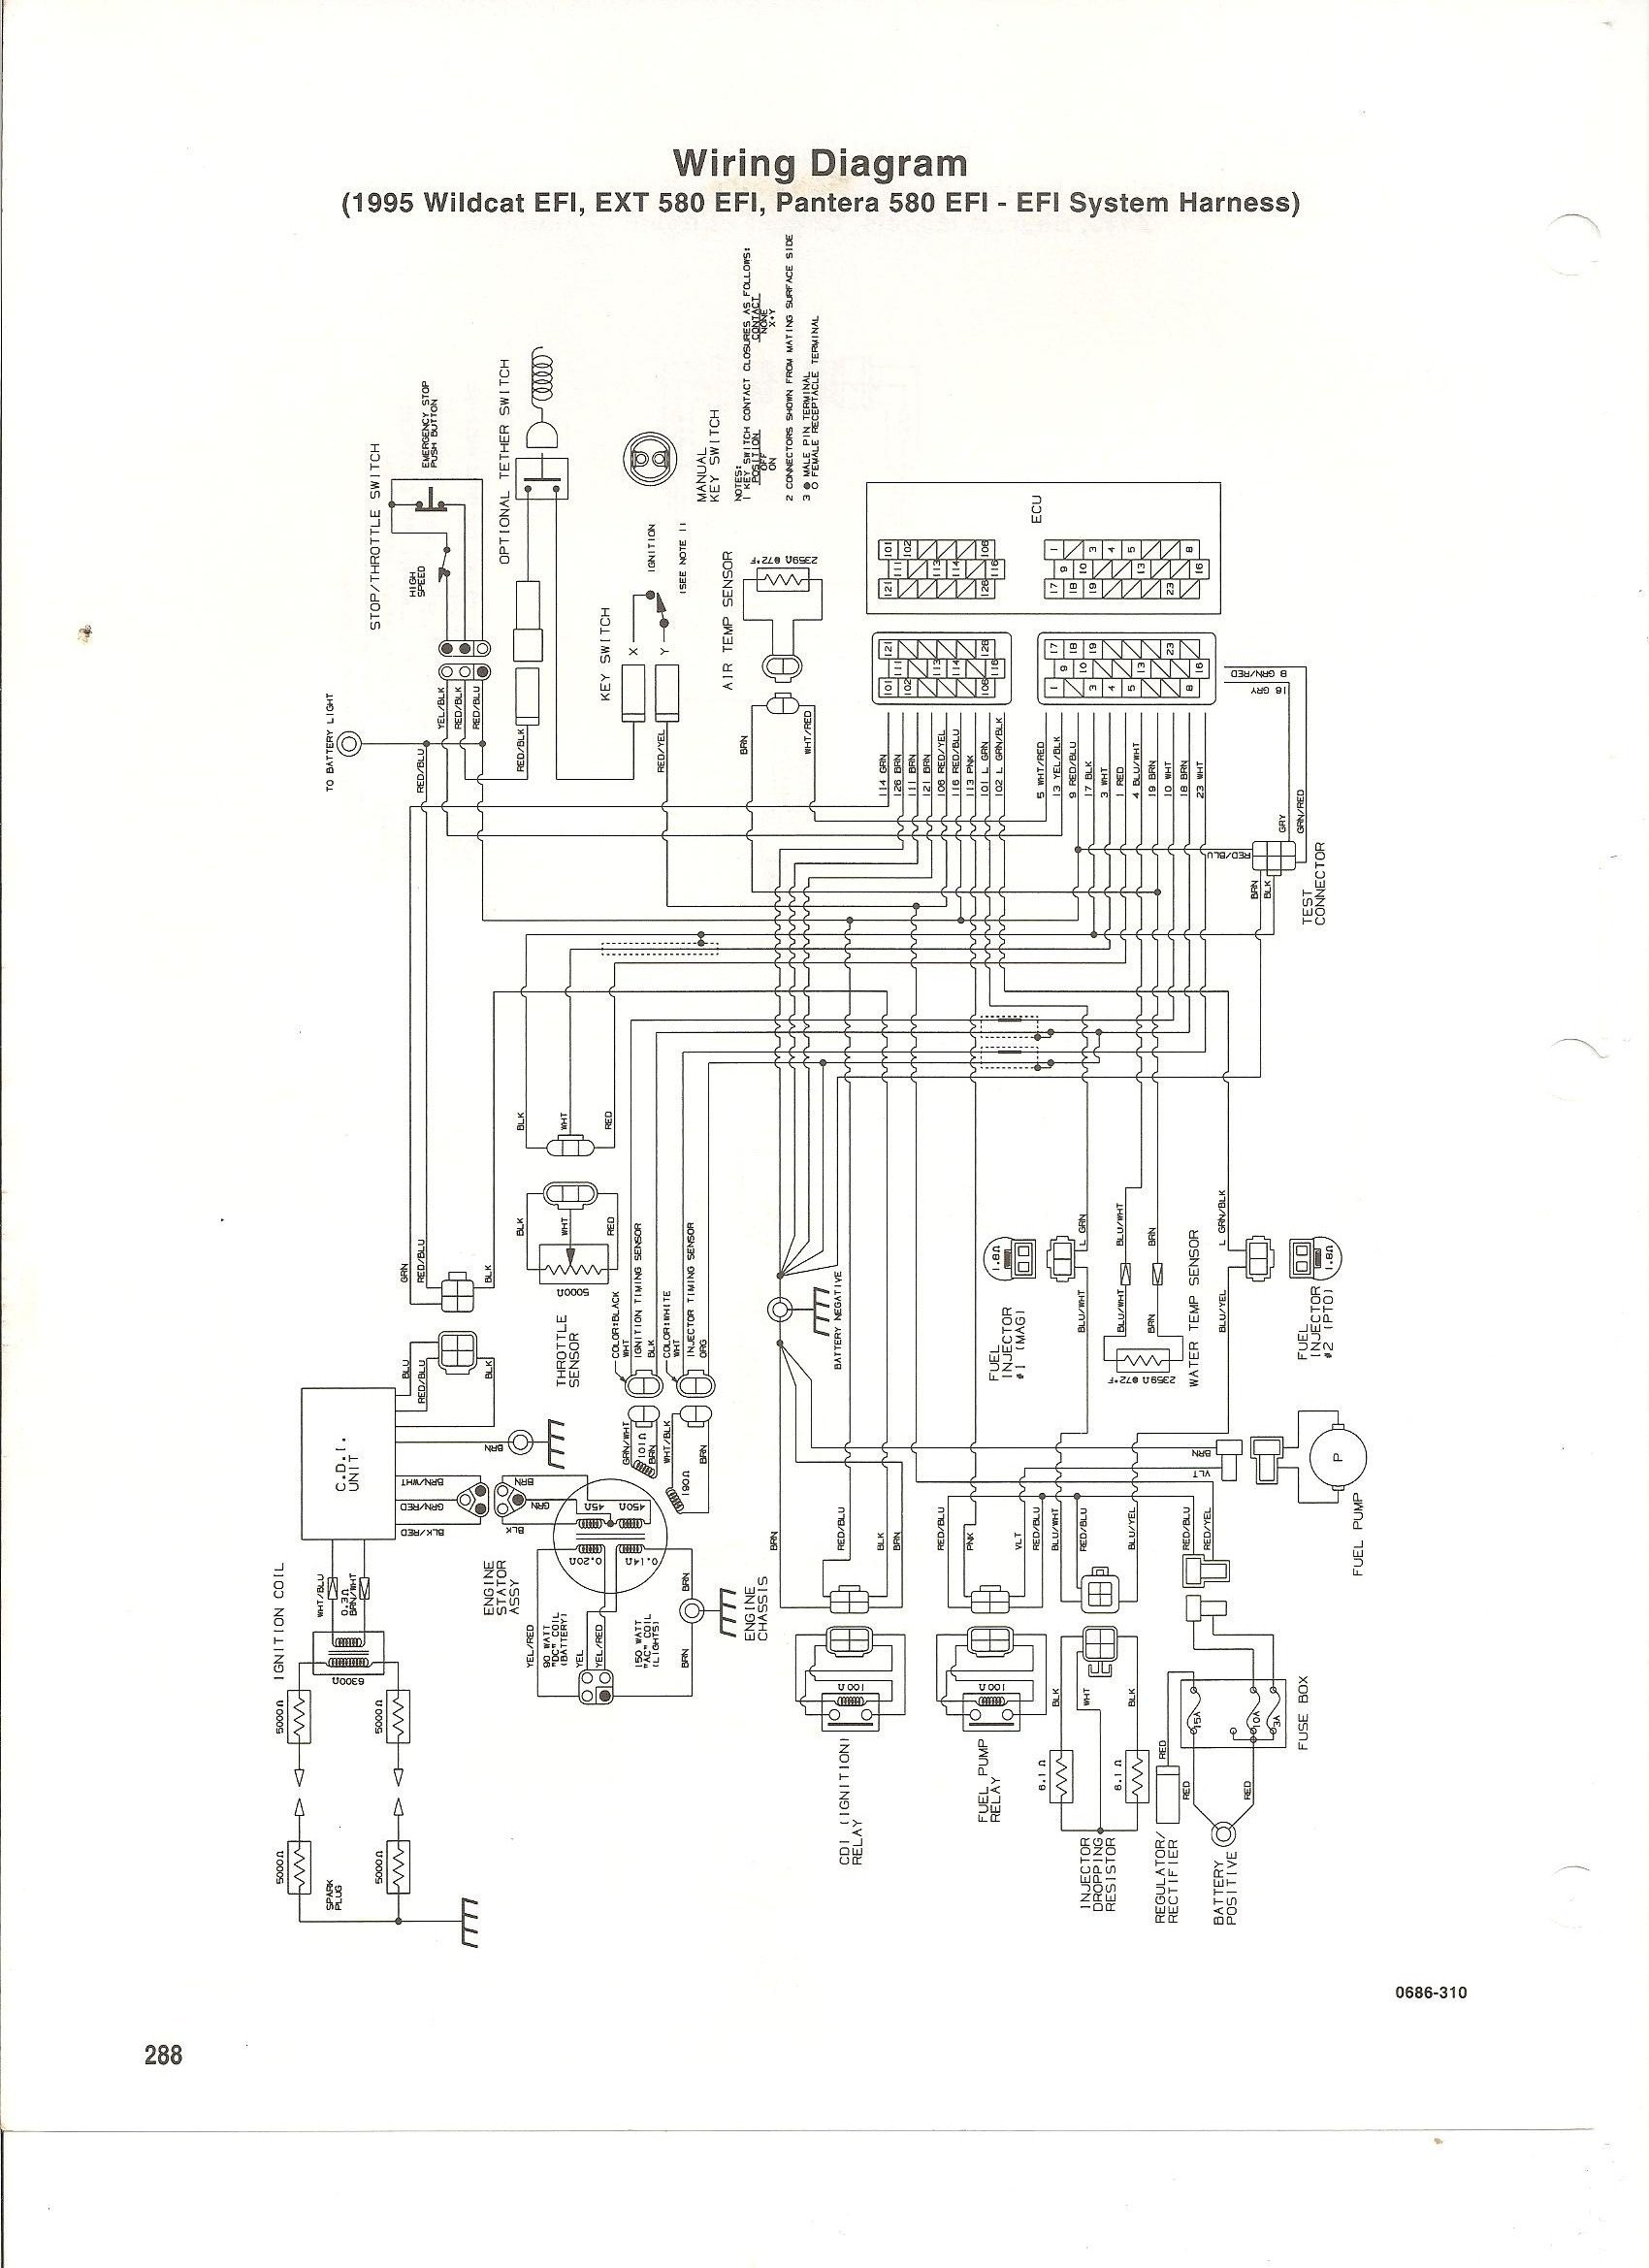 1994 arctic cat zr 580 wiring diagram